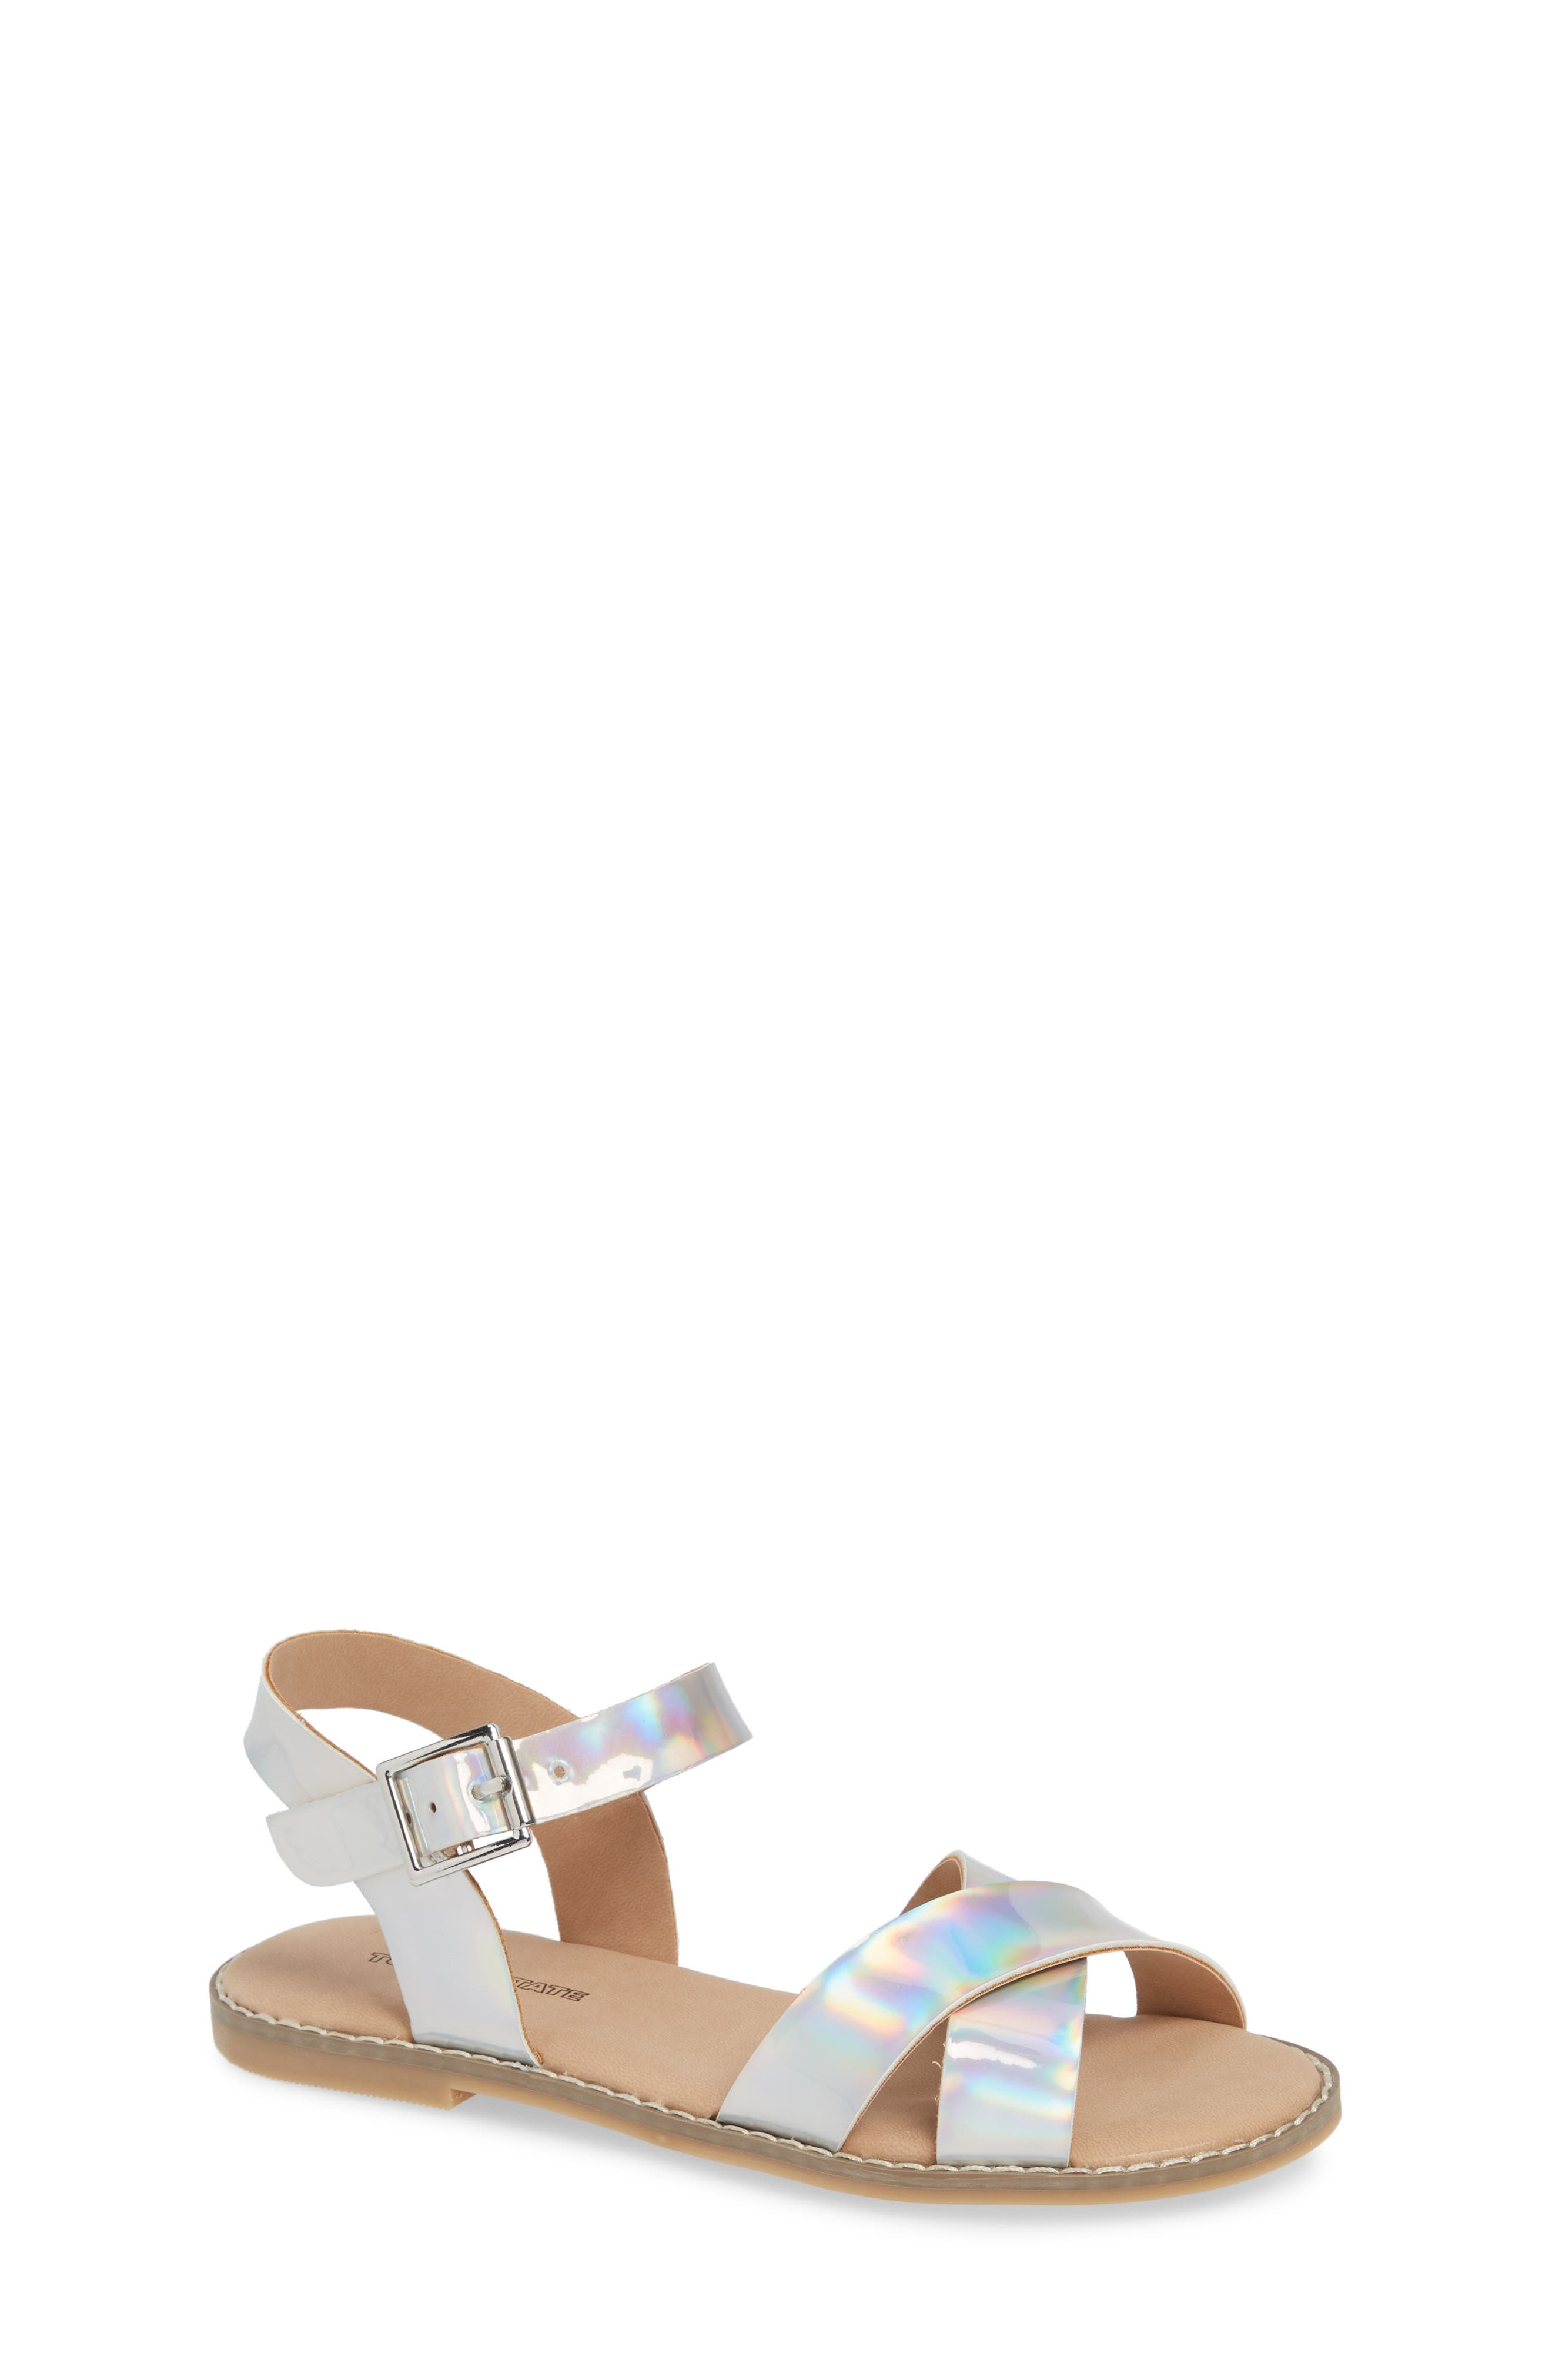 Arya Cross Strap Sandal,                             Main thumbnail 1, color,                             SILVER HOLOGRAM FAUX LEATHER